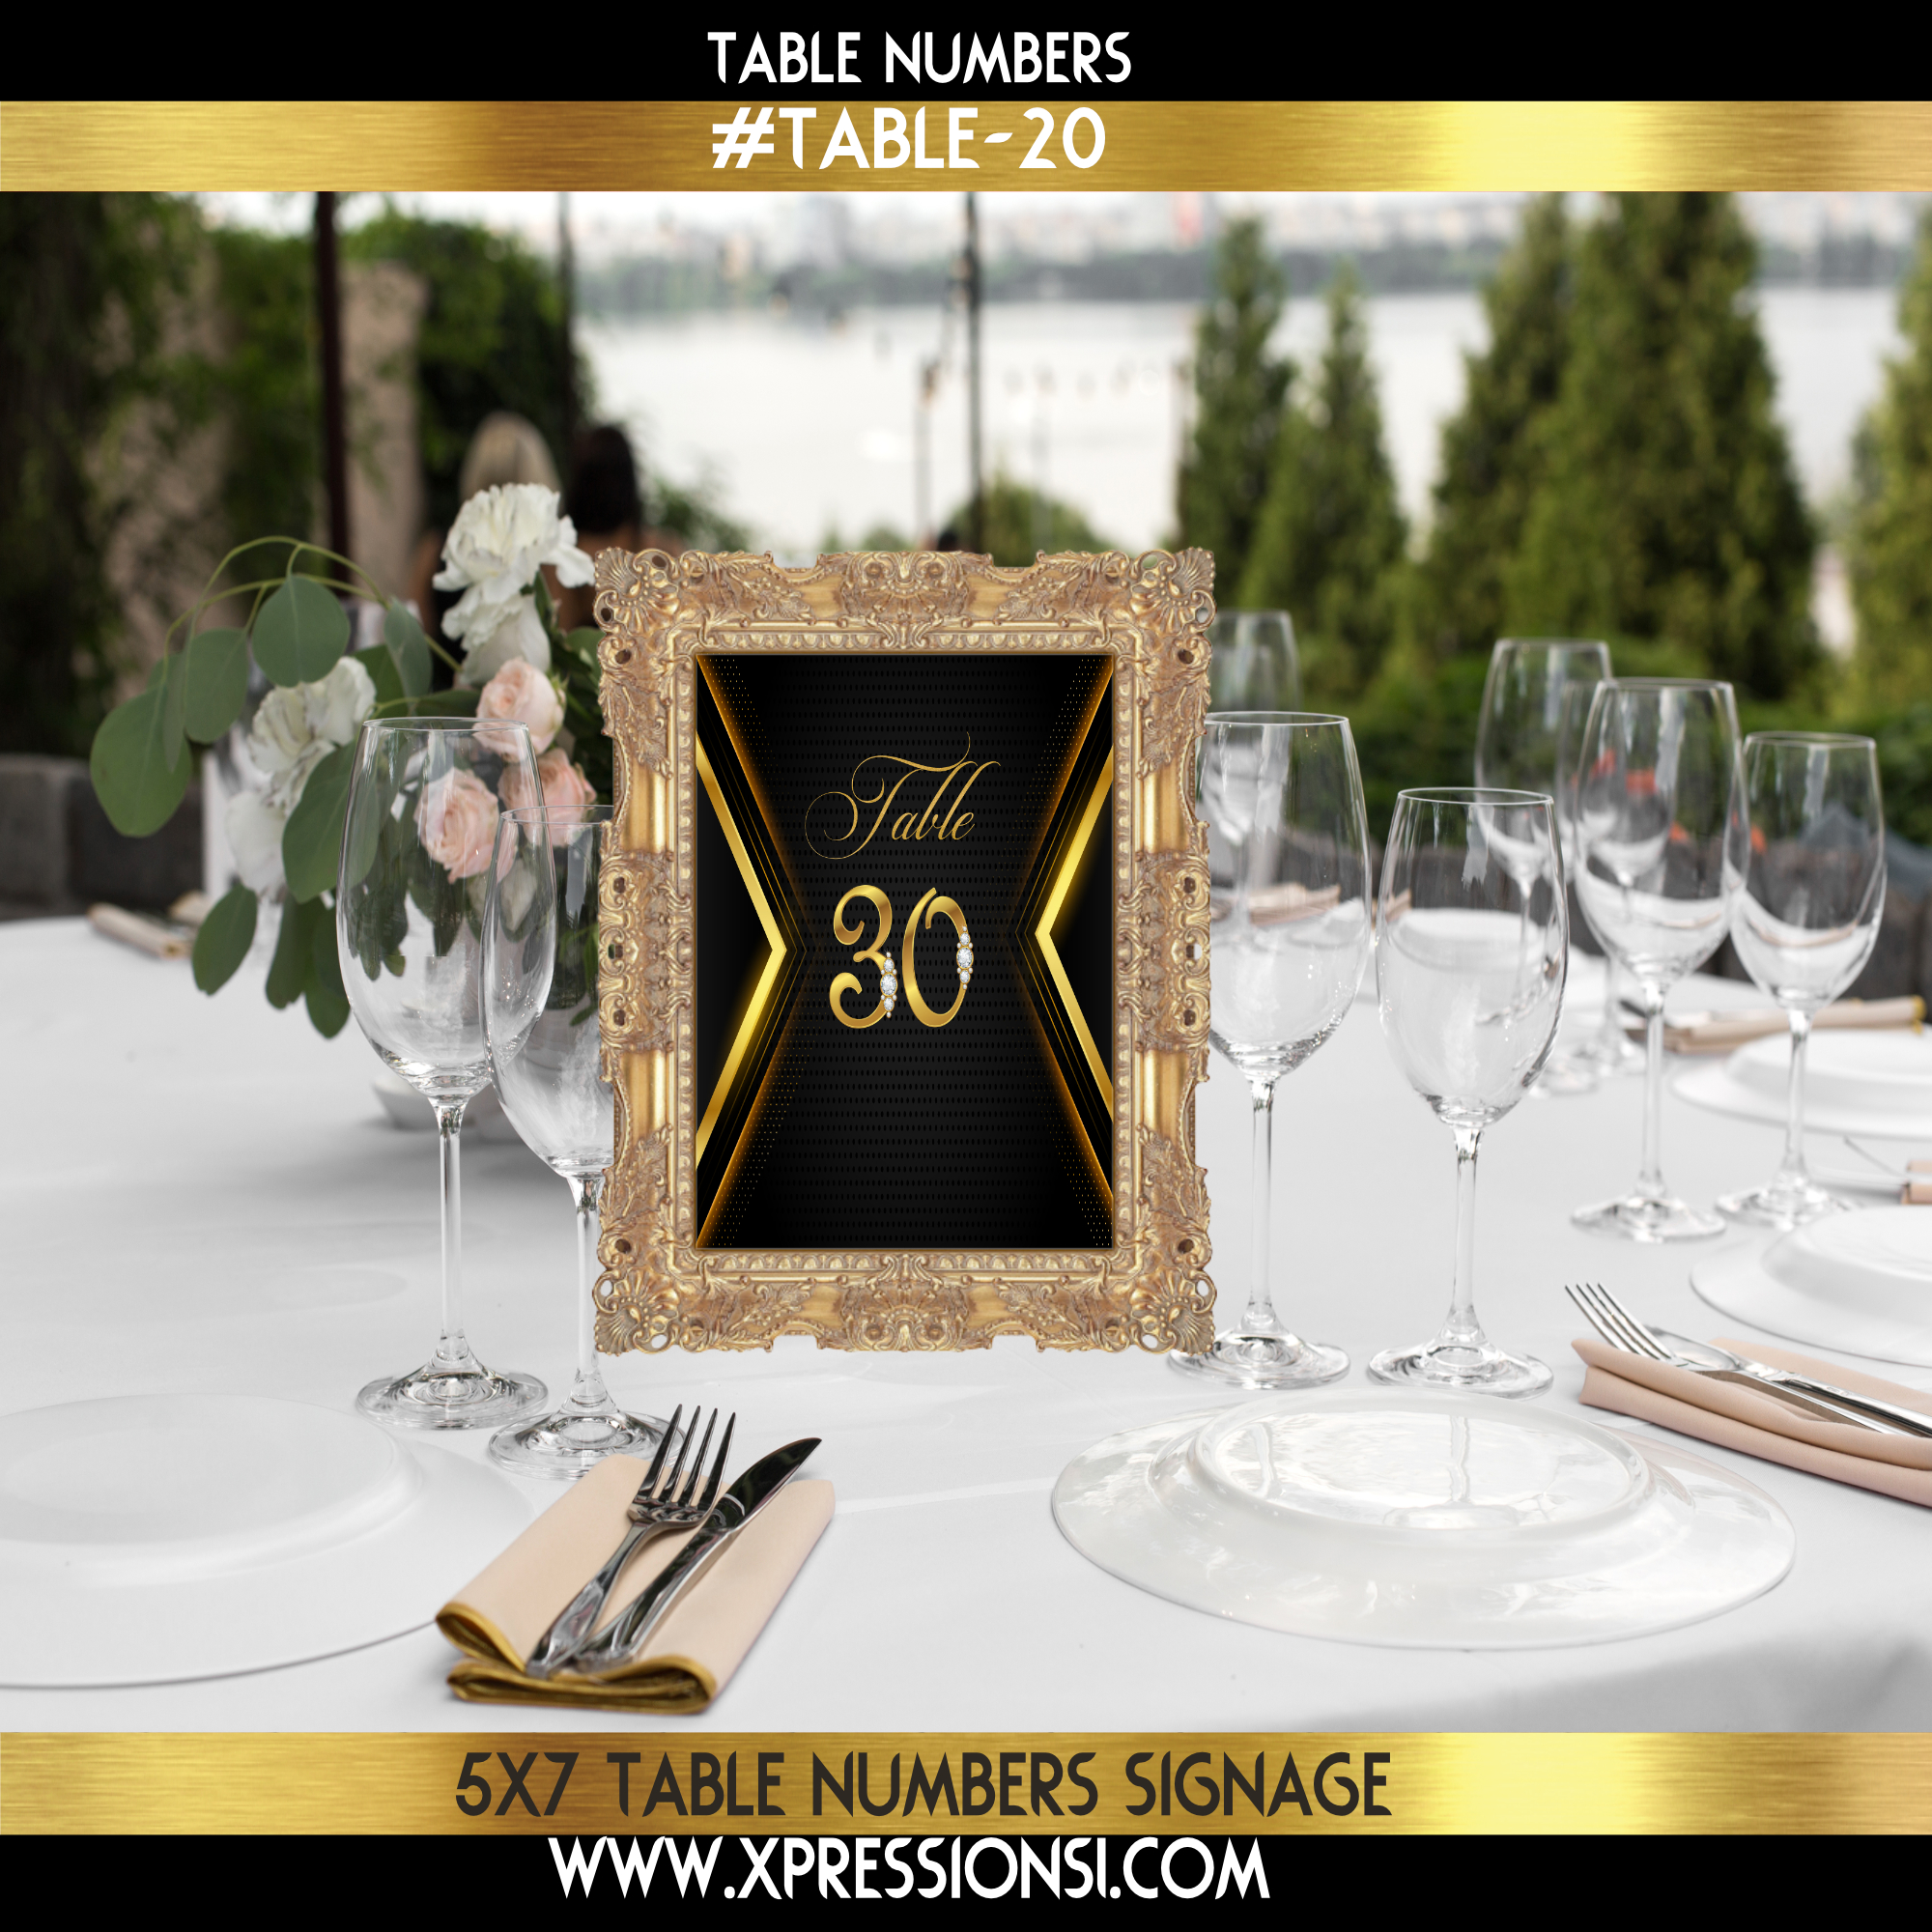 Making a Statement Table Numbers